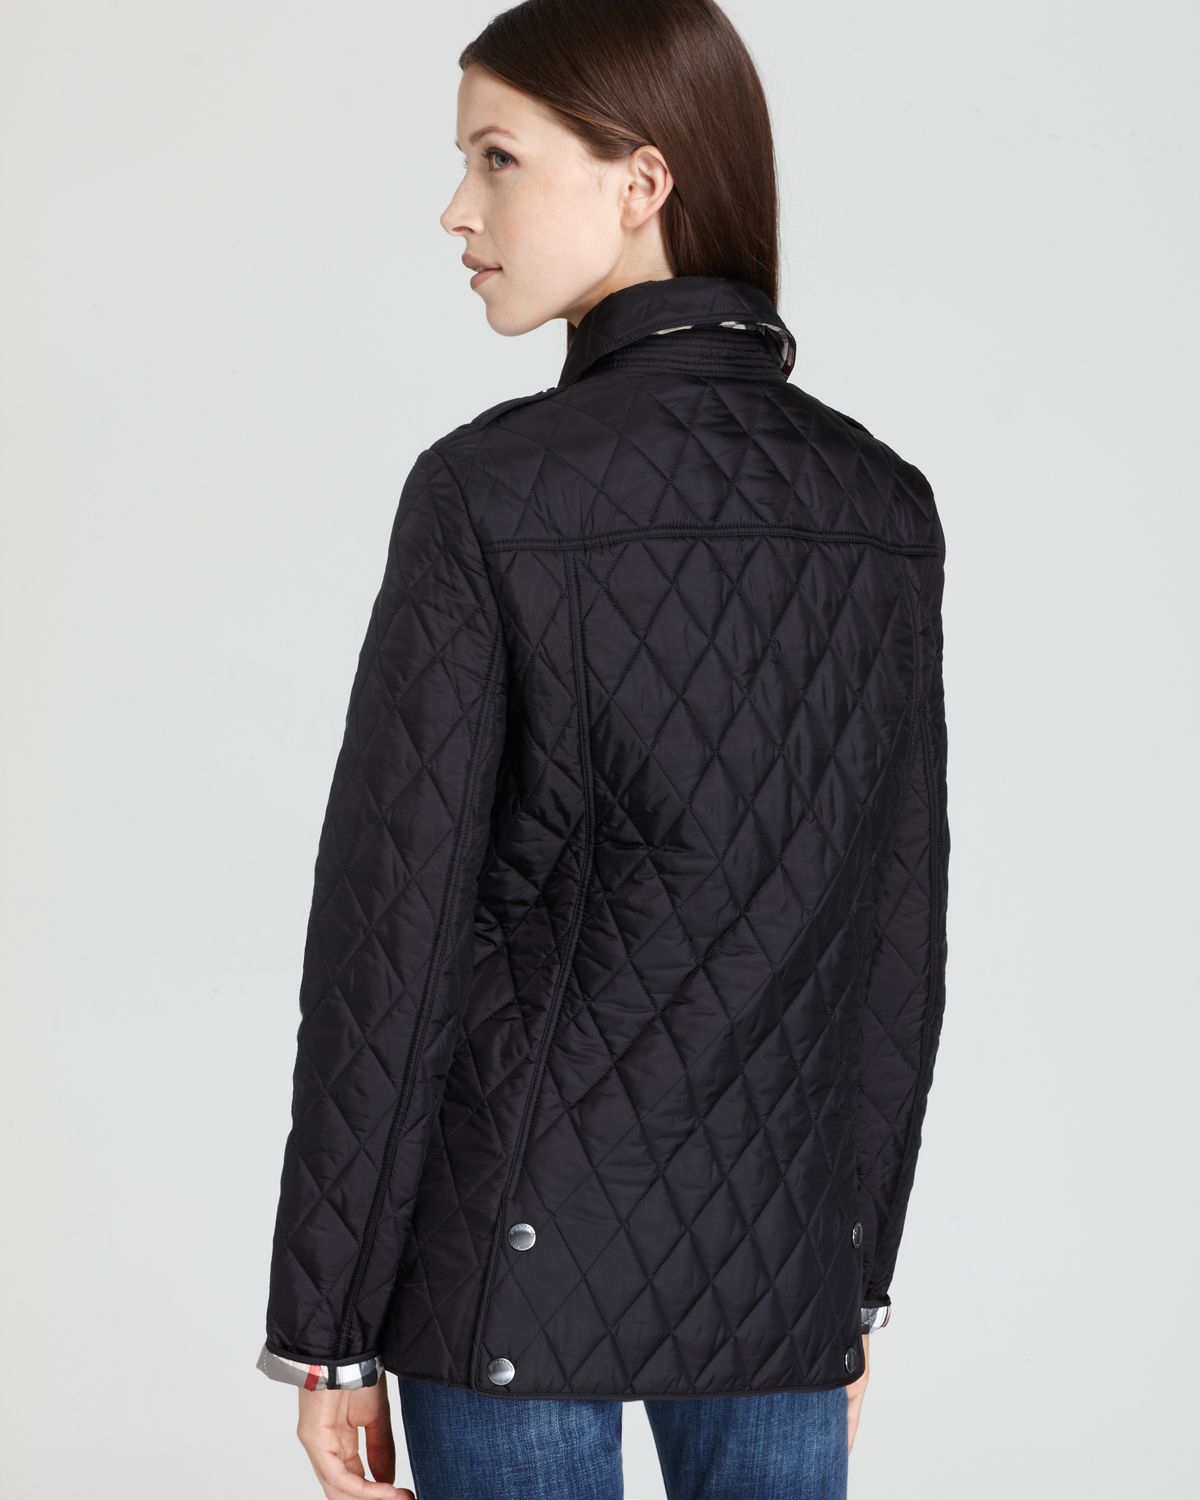 Lyst Burberry Pirmont Quilted Jacket In Black